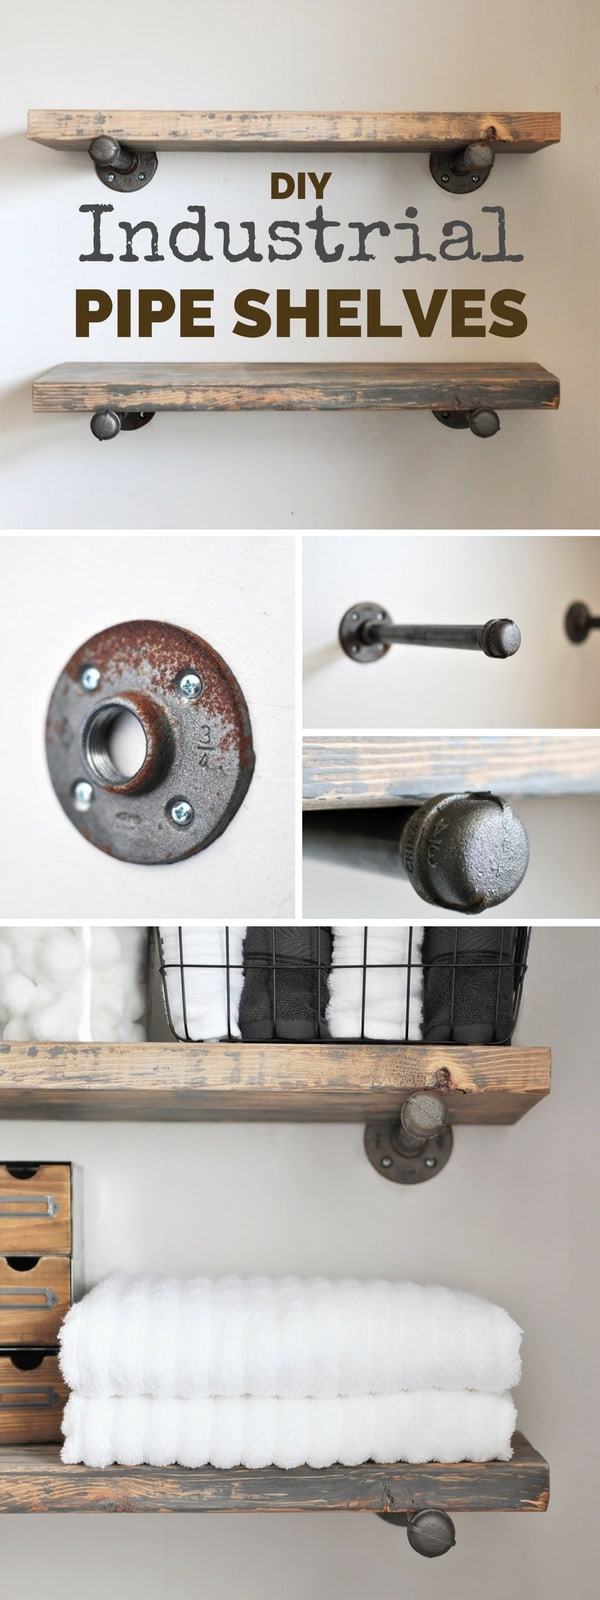 industrial-pipe-shelves